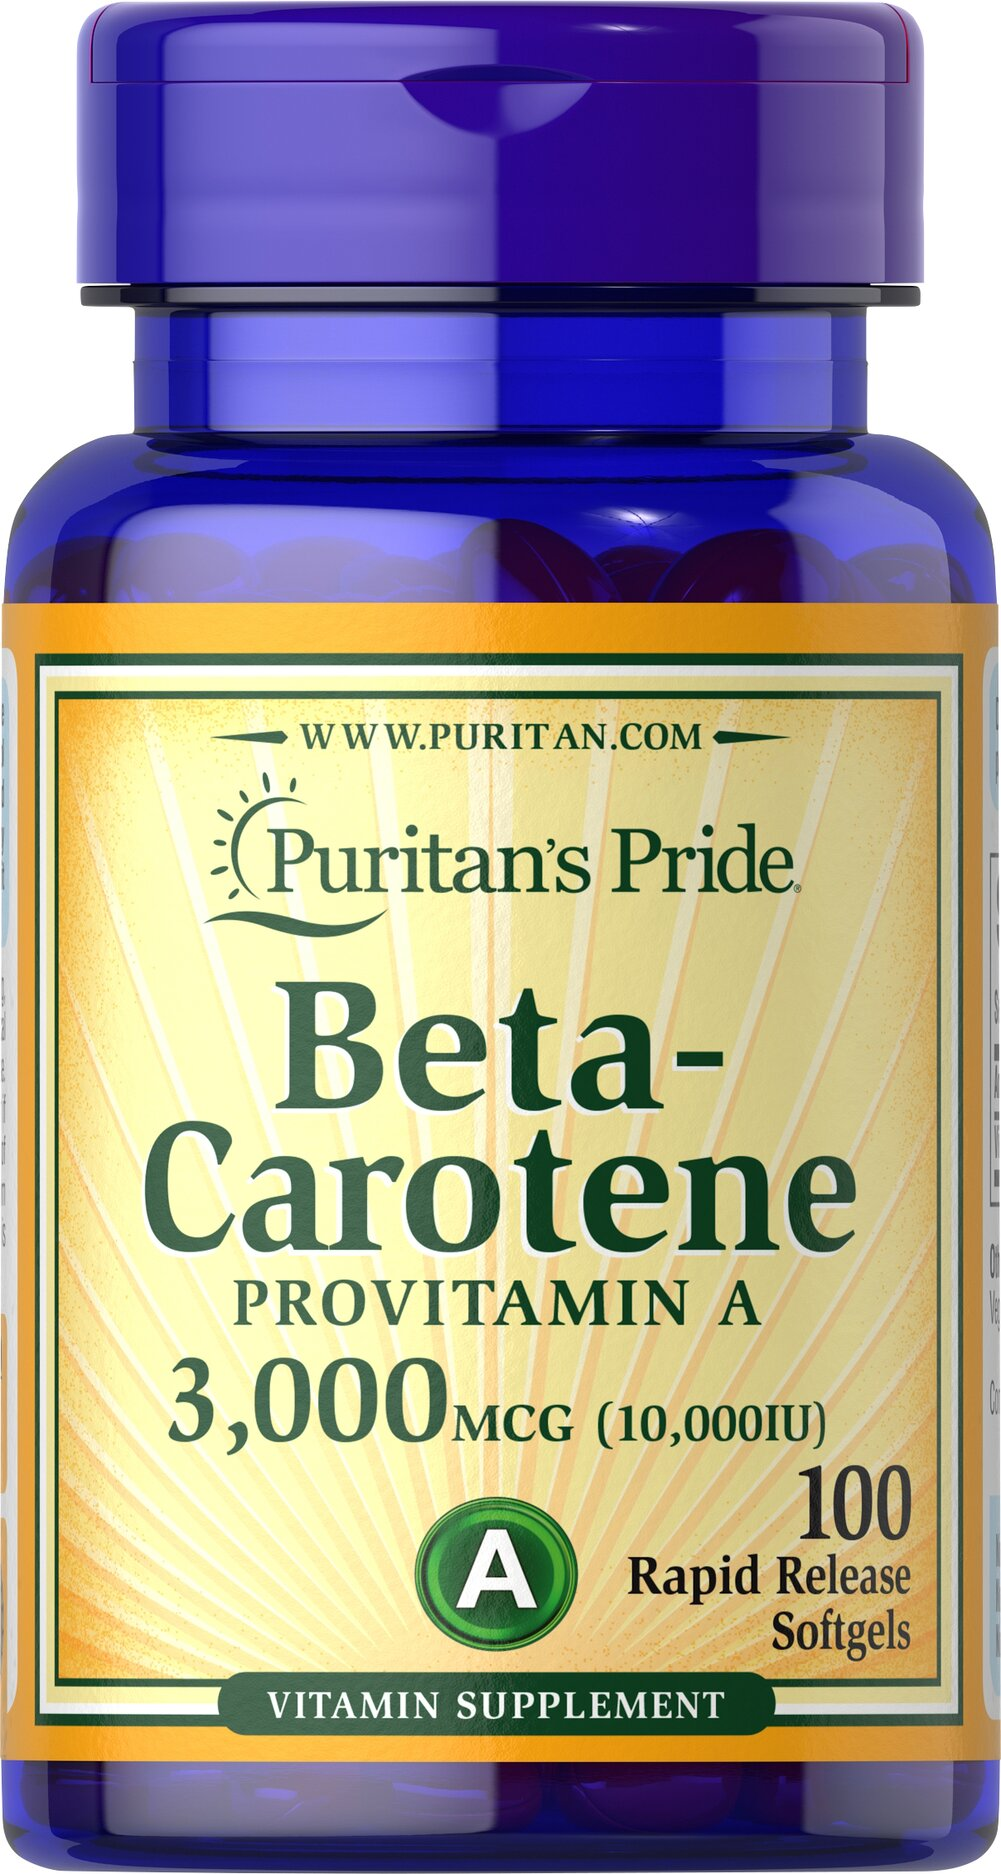 Beta-Carotene 10,000 IU <p>Found in a variety of fruits and vegetables, this provitamin A, is famous for giving carrots a rich orange color.</p><p>Readily converts to Vitamin A in the system when needed.**</p><p>Helps maintain the health of eyes.**</p><p>Supports the immune system.**</p><p>Provides antioxidant benefits for the heart and other organs.**</p><p>Helps maintain the skin and health of hair. **</p>  100 Softgels 10